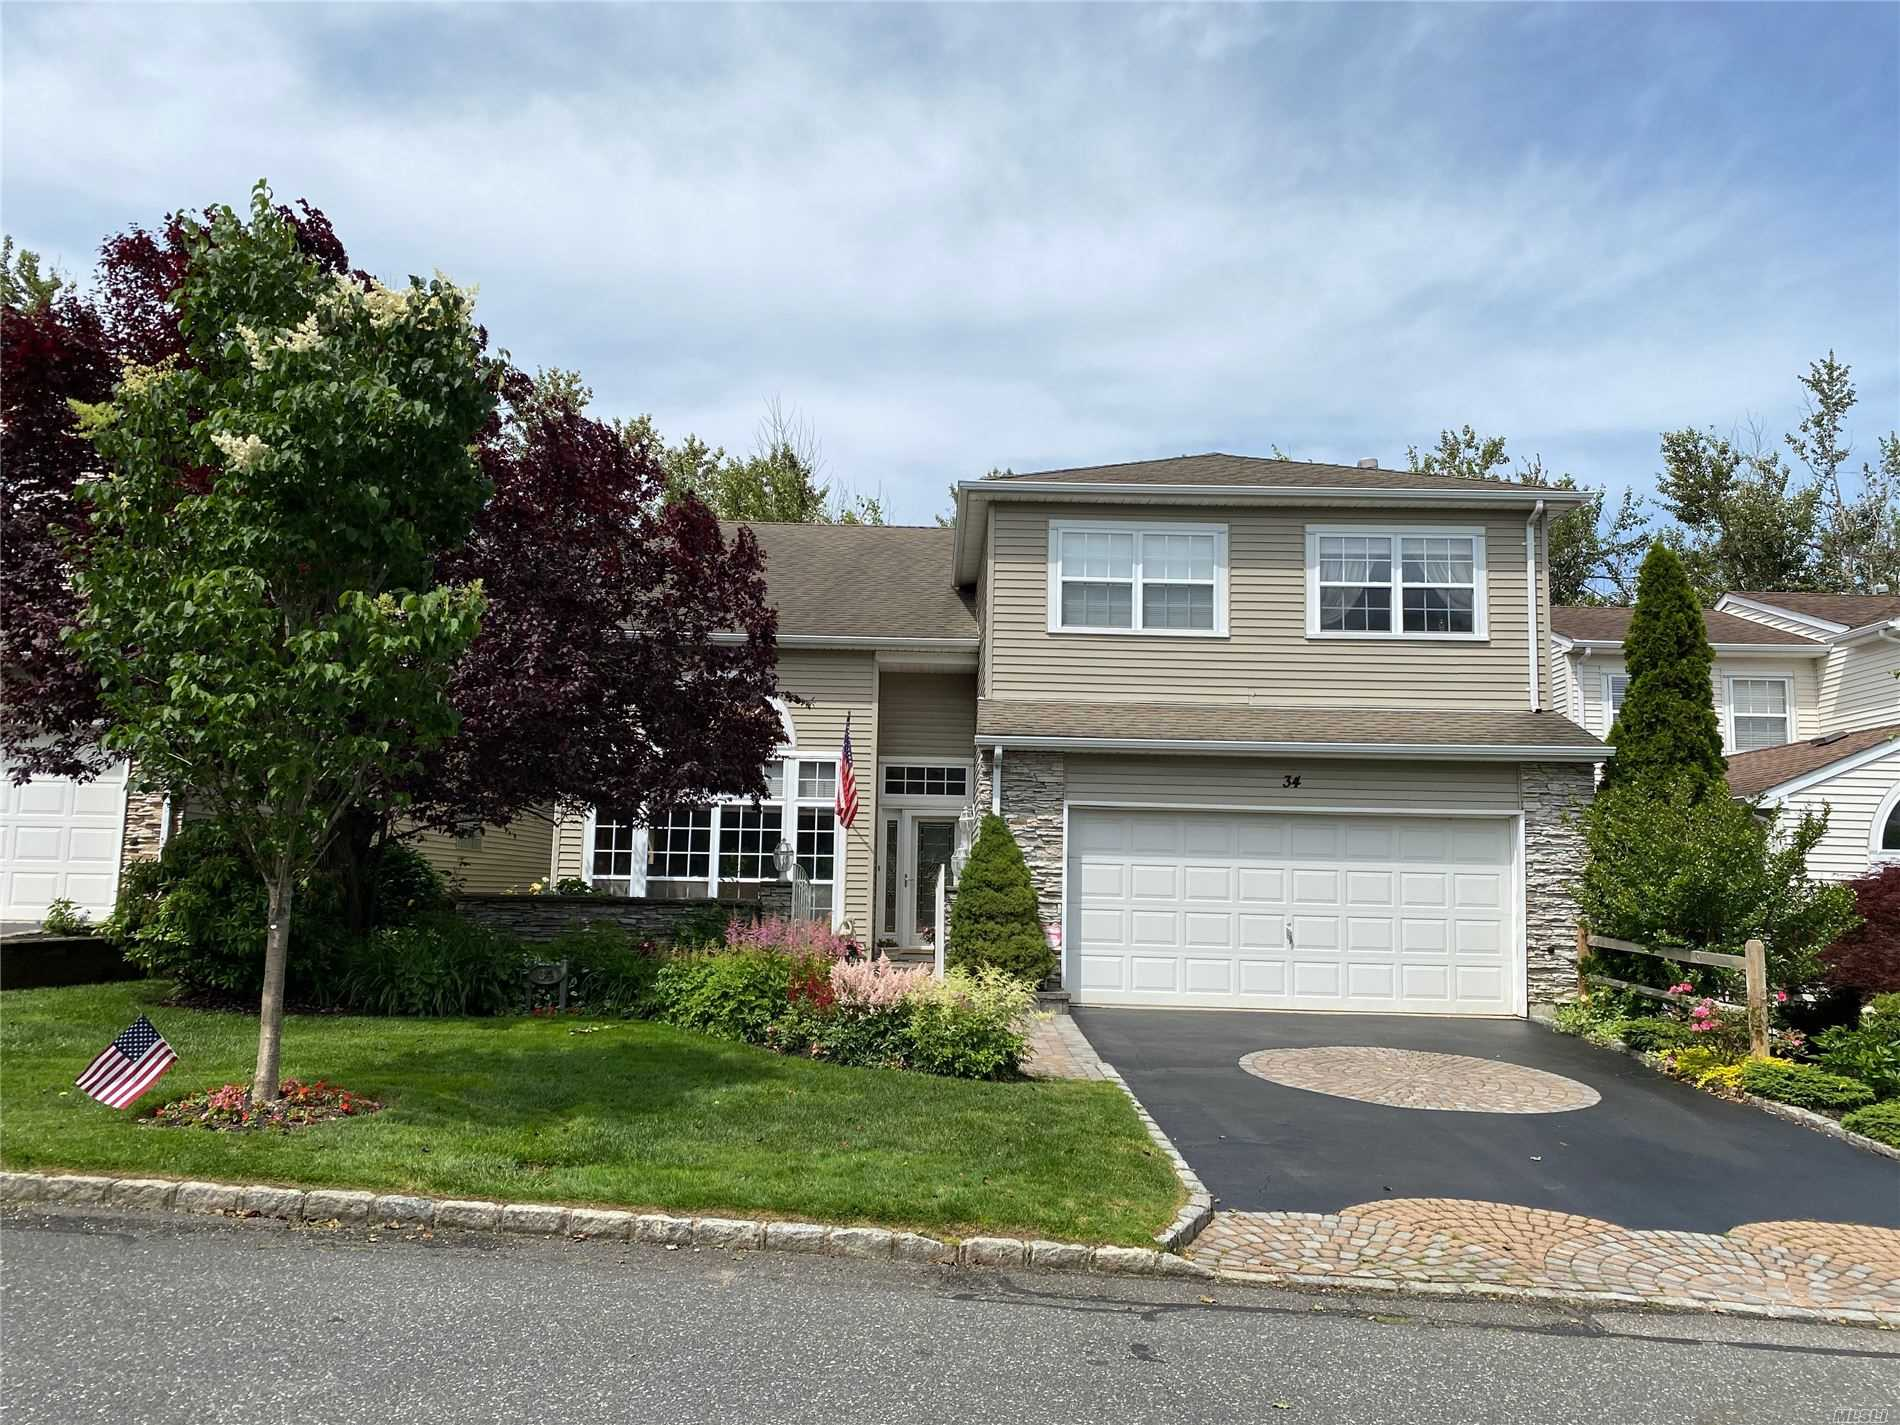 Property for sale at 34 Hamlet Drive, Hauppauge NY 11788, Hauppauge,  New York 11788